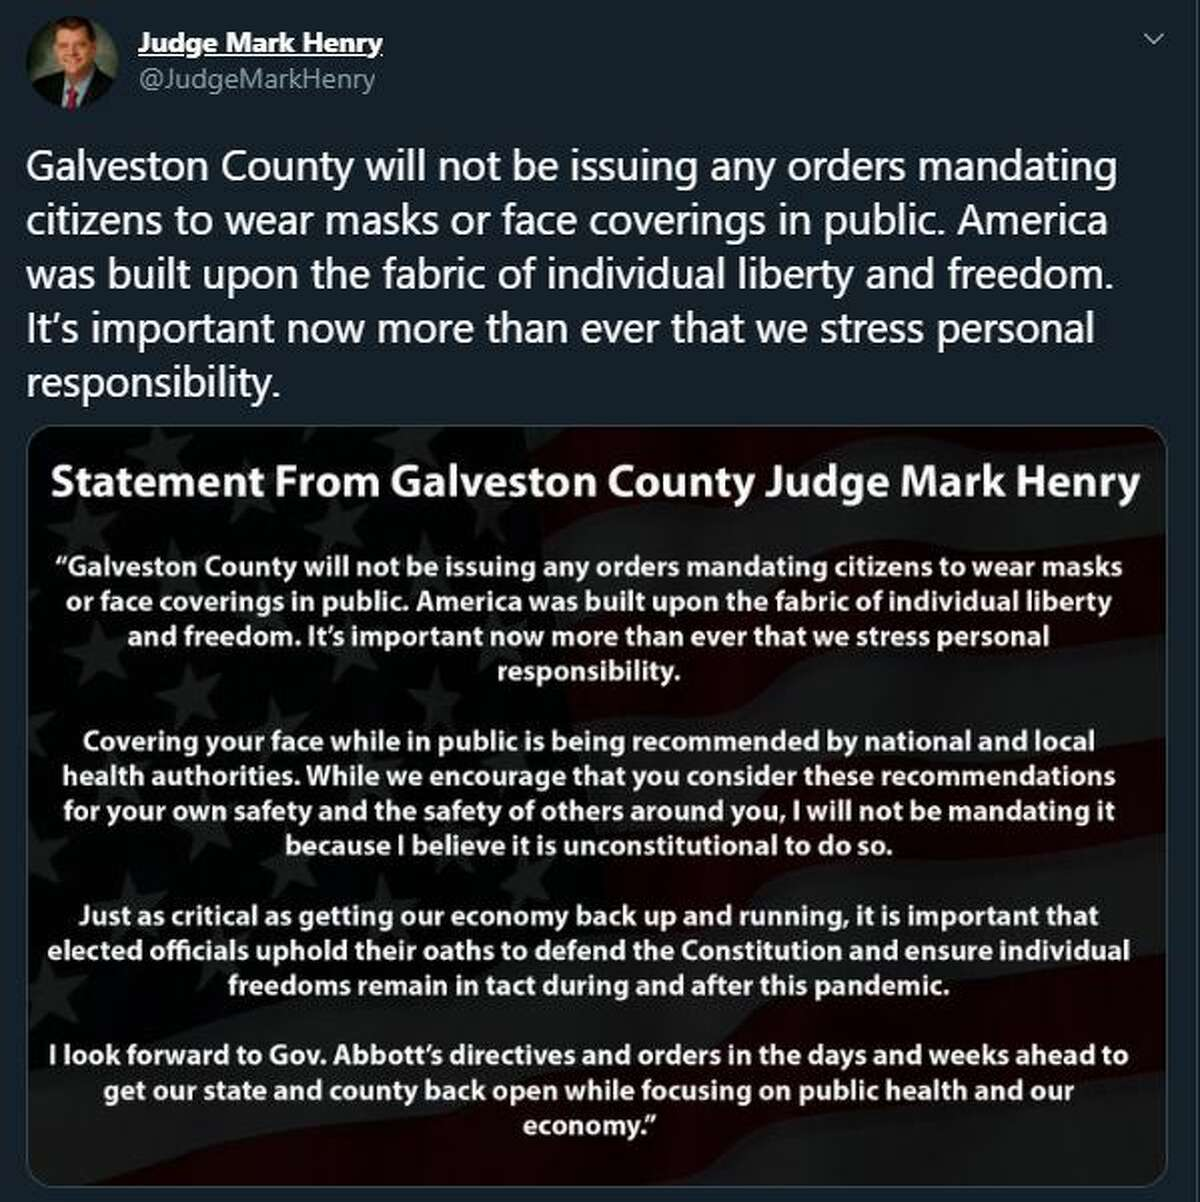 Galveston County Judge Mark Henry said he does not plan to issue a similar mask order.